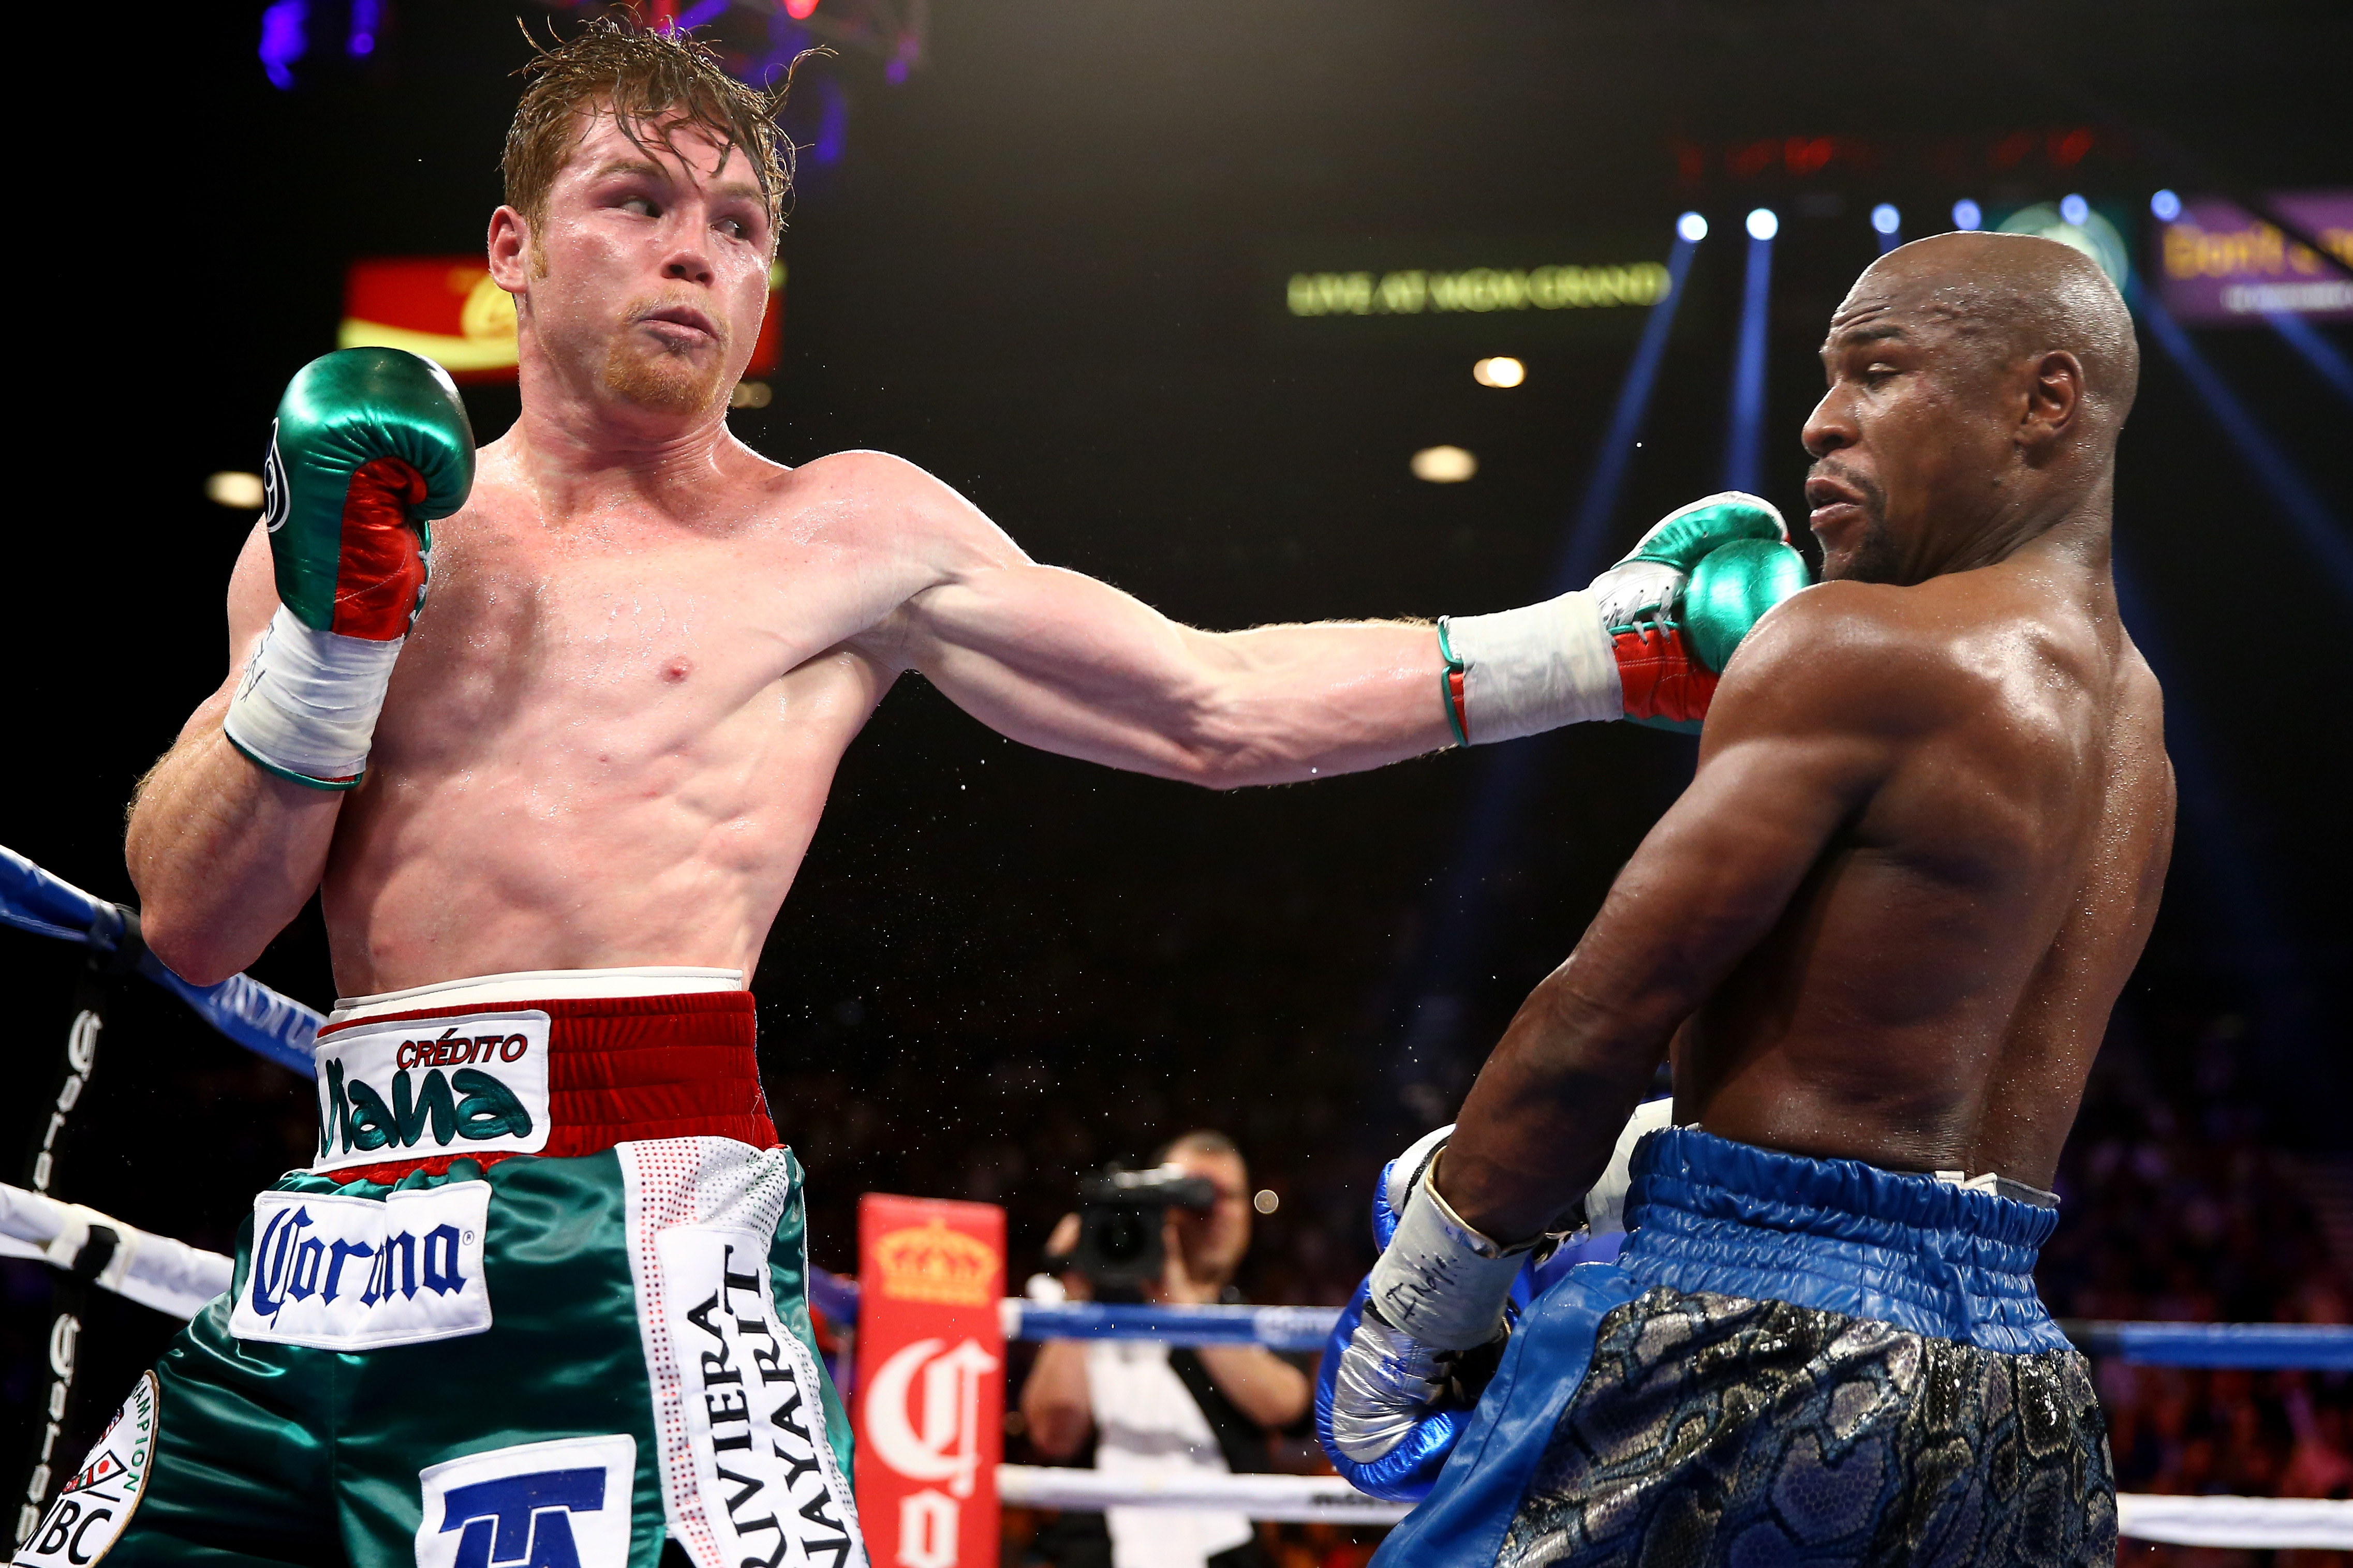 Canelo Alvarez takes a swipe at Floyd Mayweather Jr. during their September 14, 2013 encounter. (Getty)